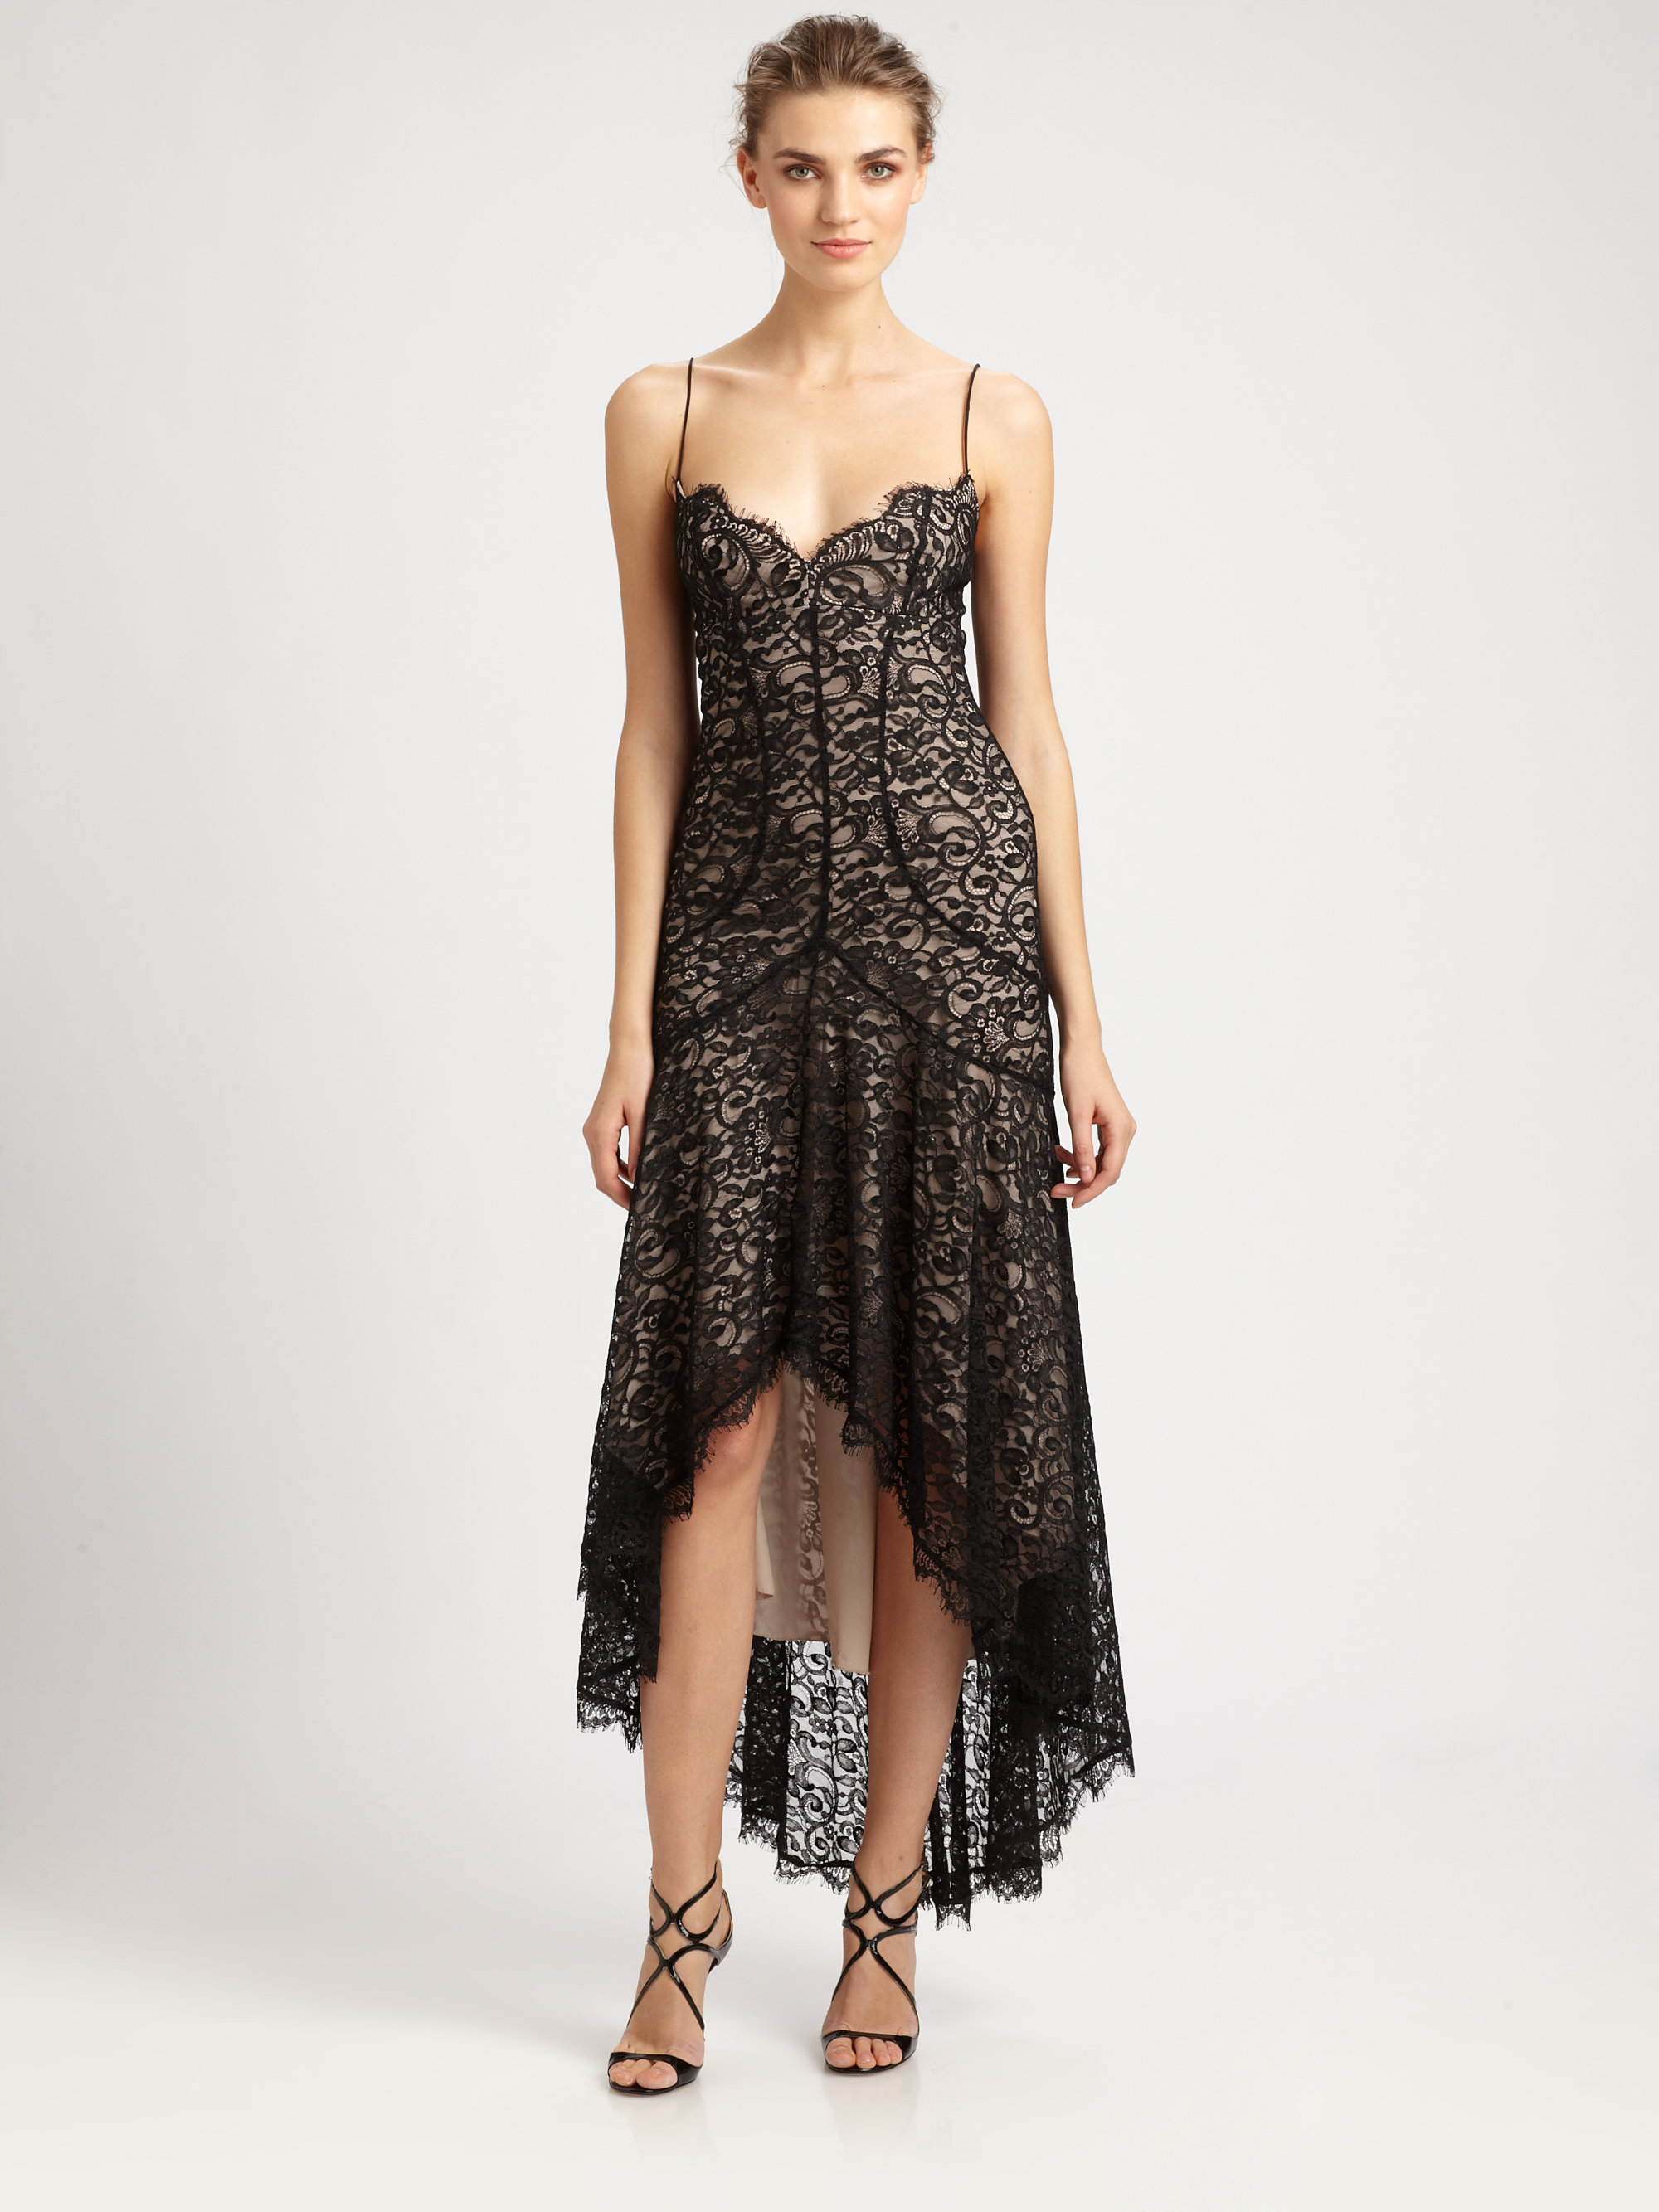 Nicole miller Hilo Lace Dress in Black | Lyst